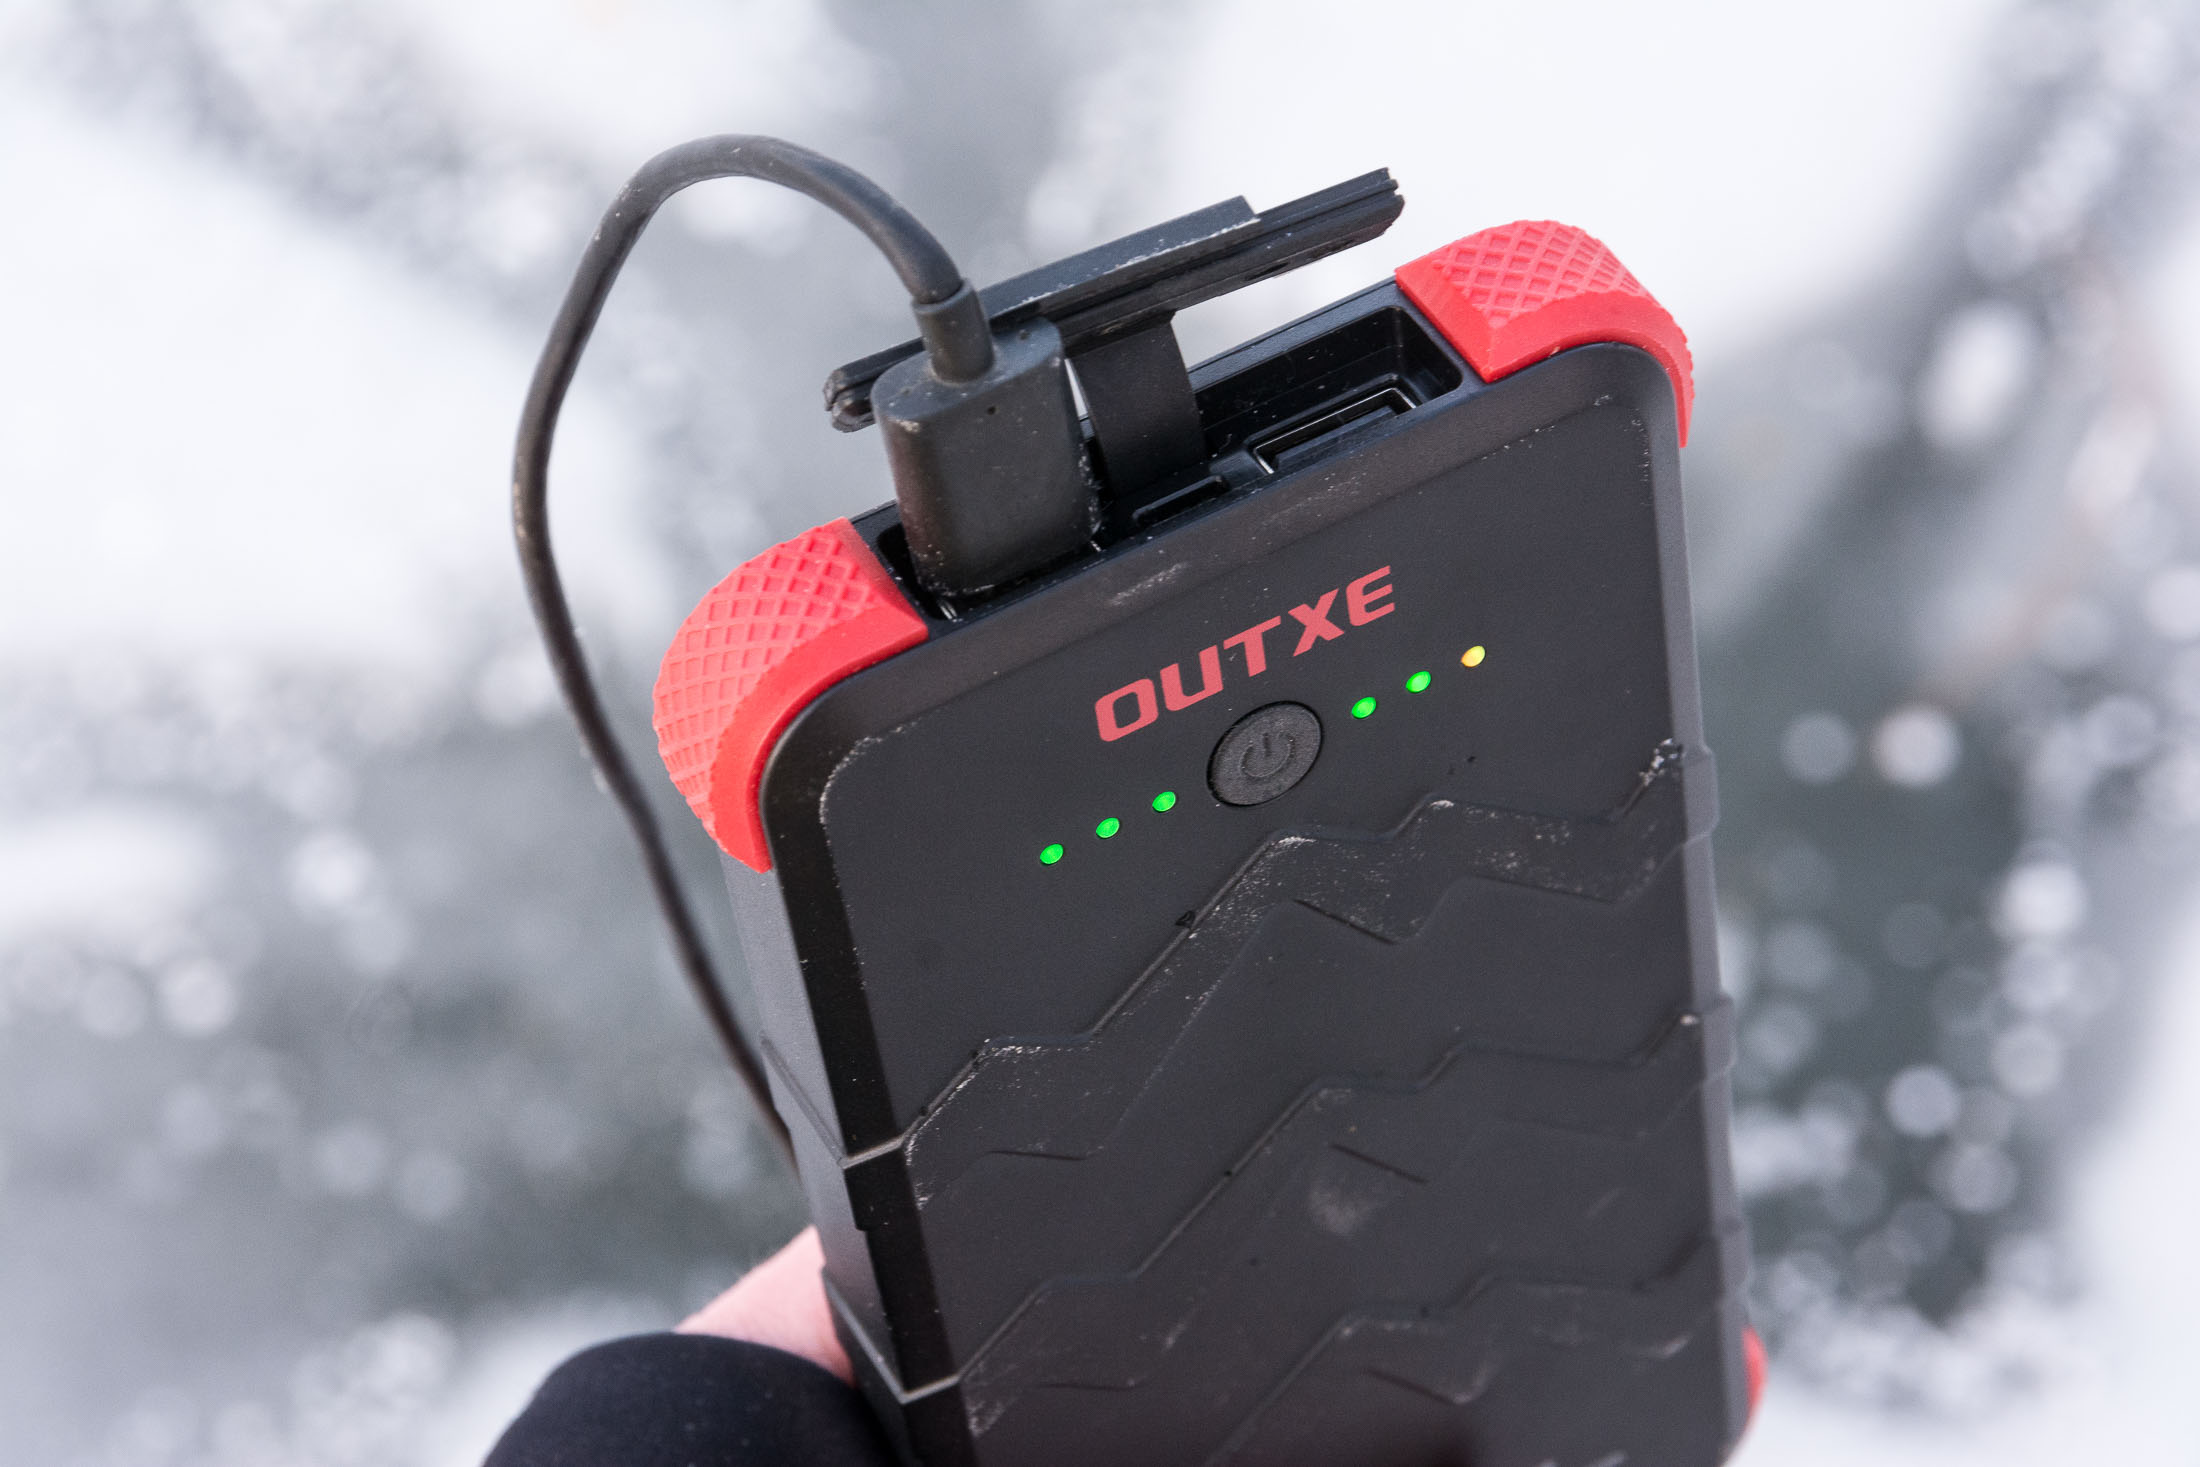 Outxe - Rugged Power Bank